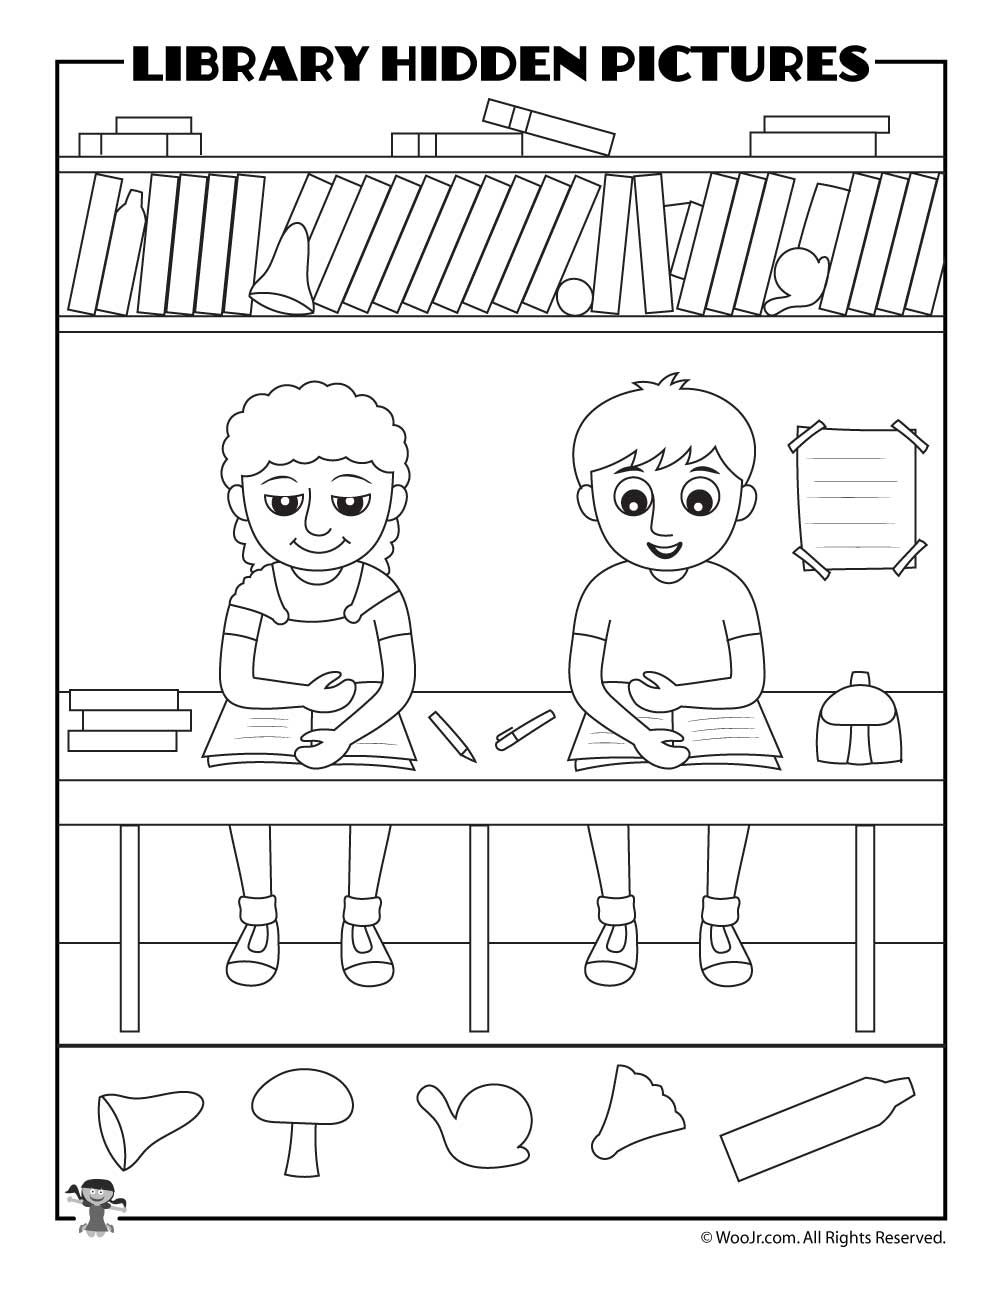 Printable Library Activities Coloring Pages Word Puzzles Hidden Pictures Woo Jr Kids Activities Hidden Pictures Library Activities Math Activities Preschool